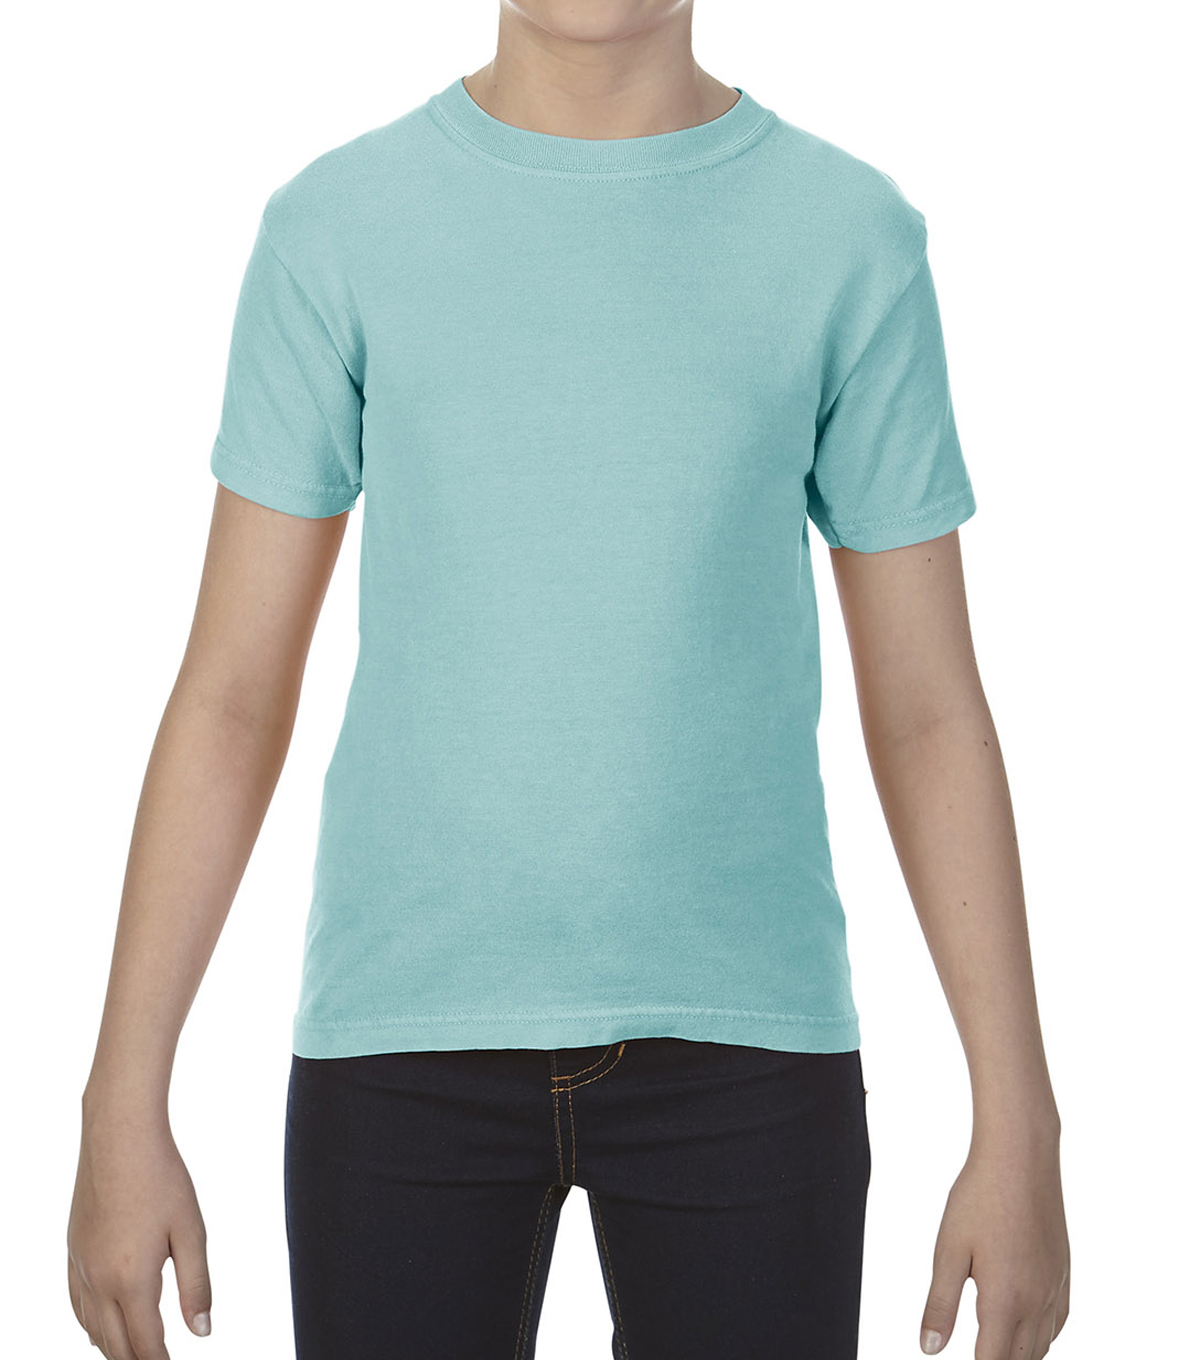 Gildan Comfort Colors 9018 Small Youth T-Shirt, Chalky Mint